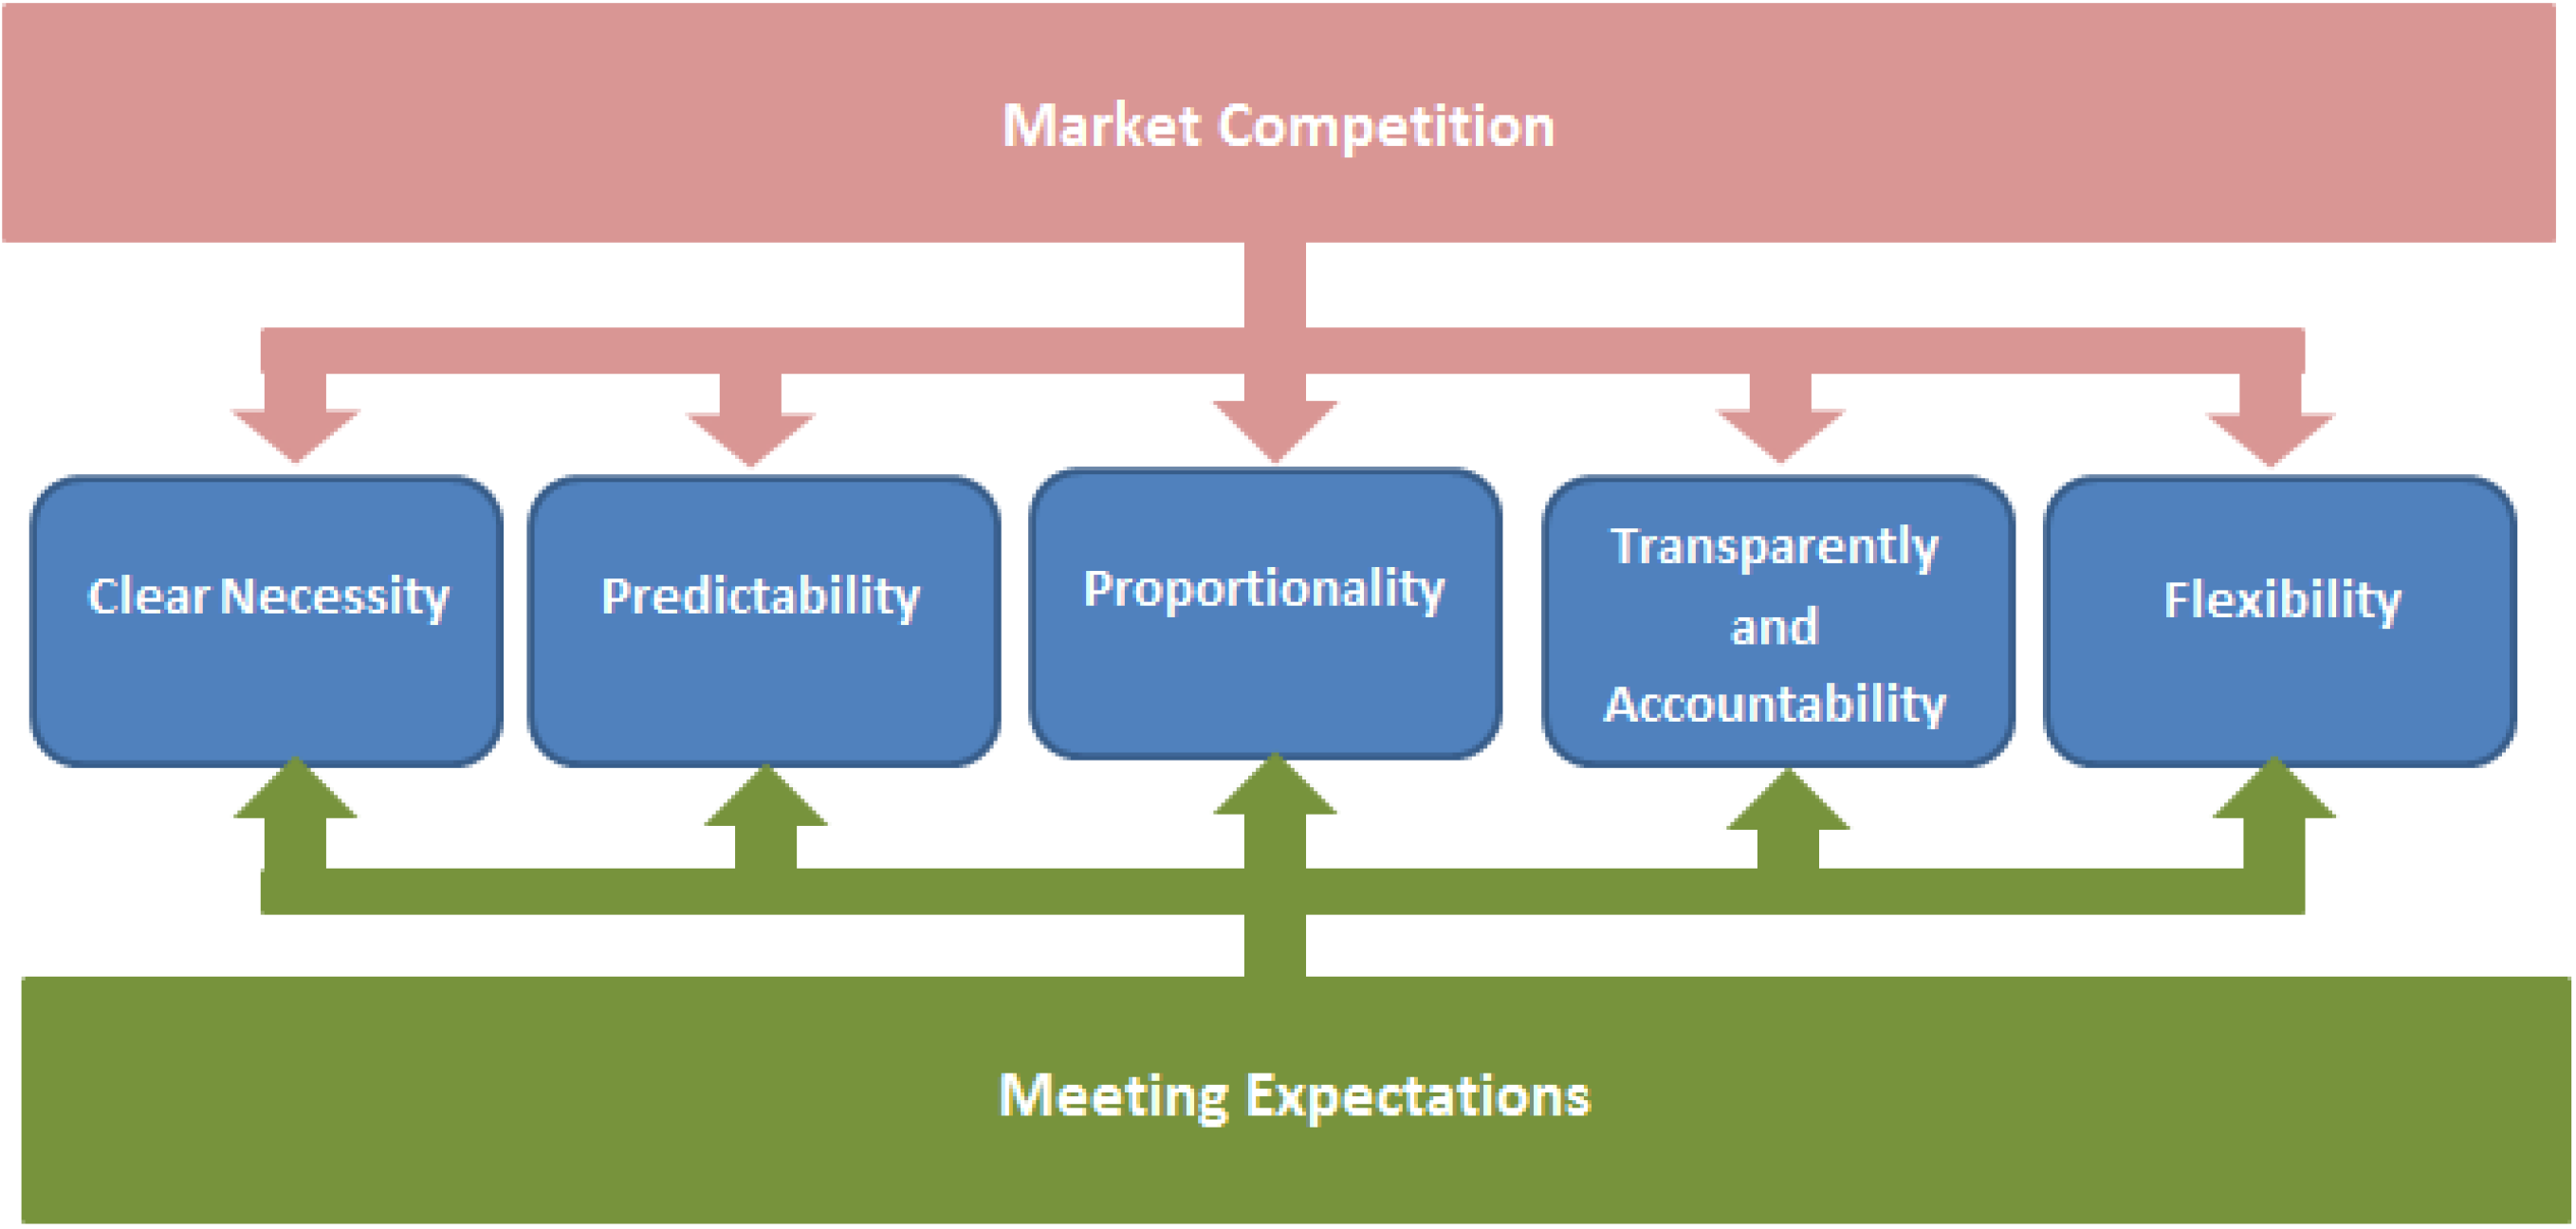 Figure 11. The proposed guideline/framework for integrating market competition